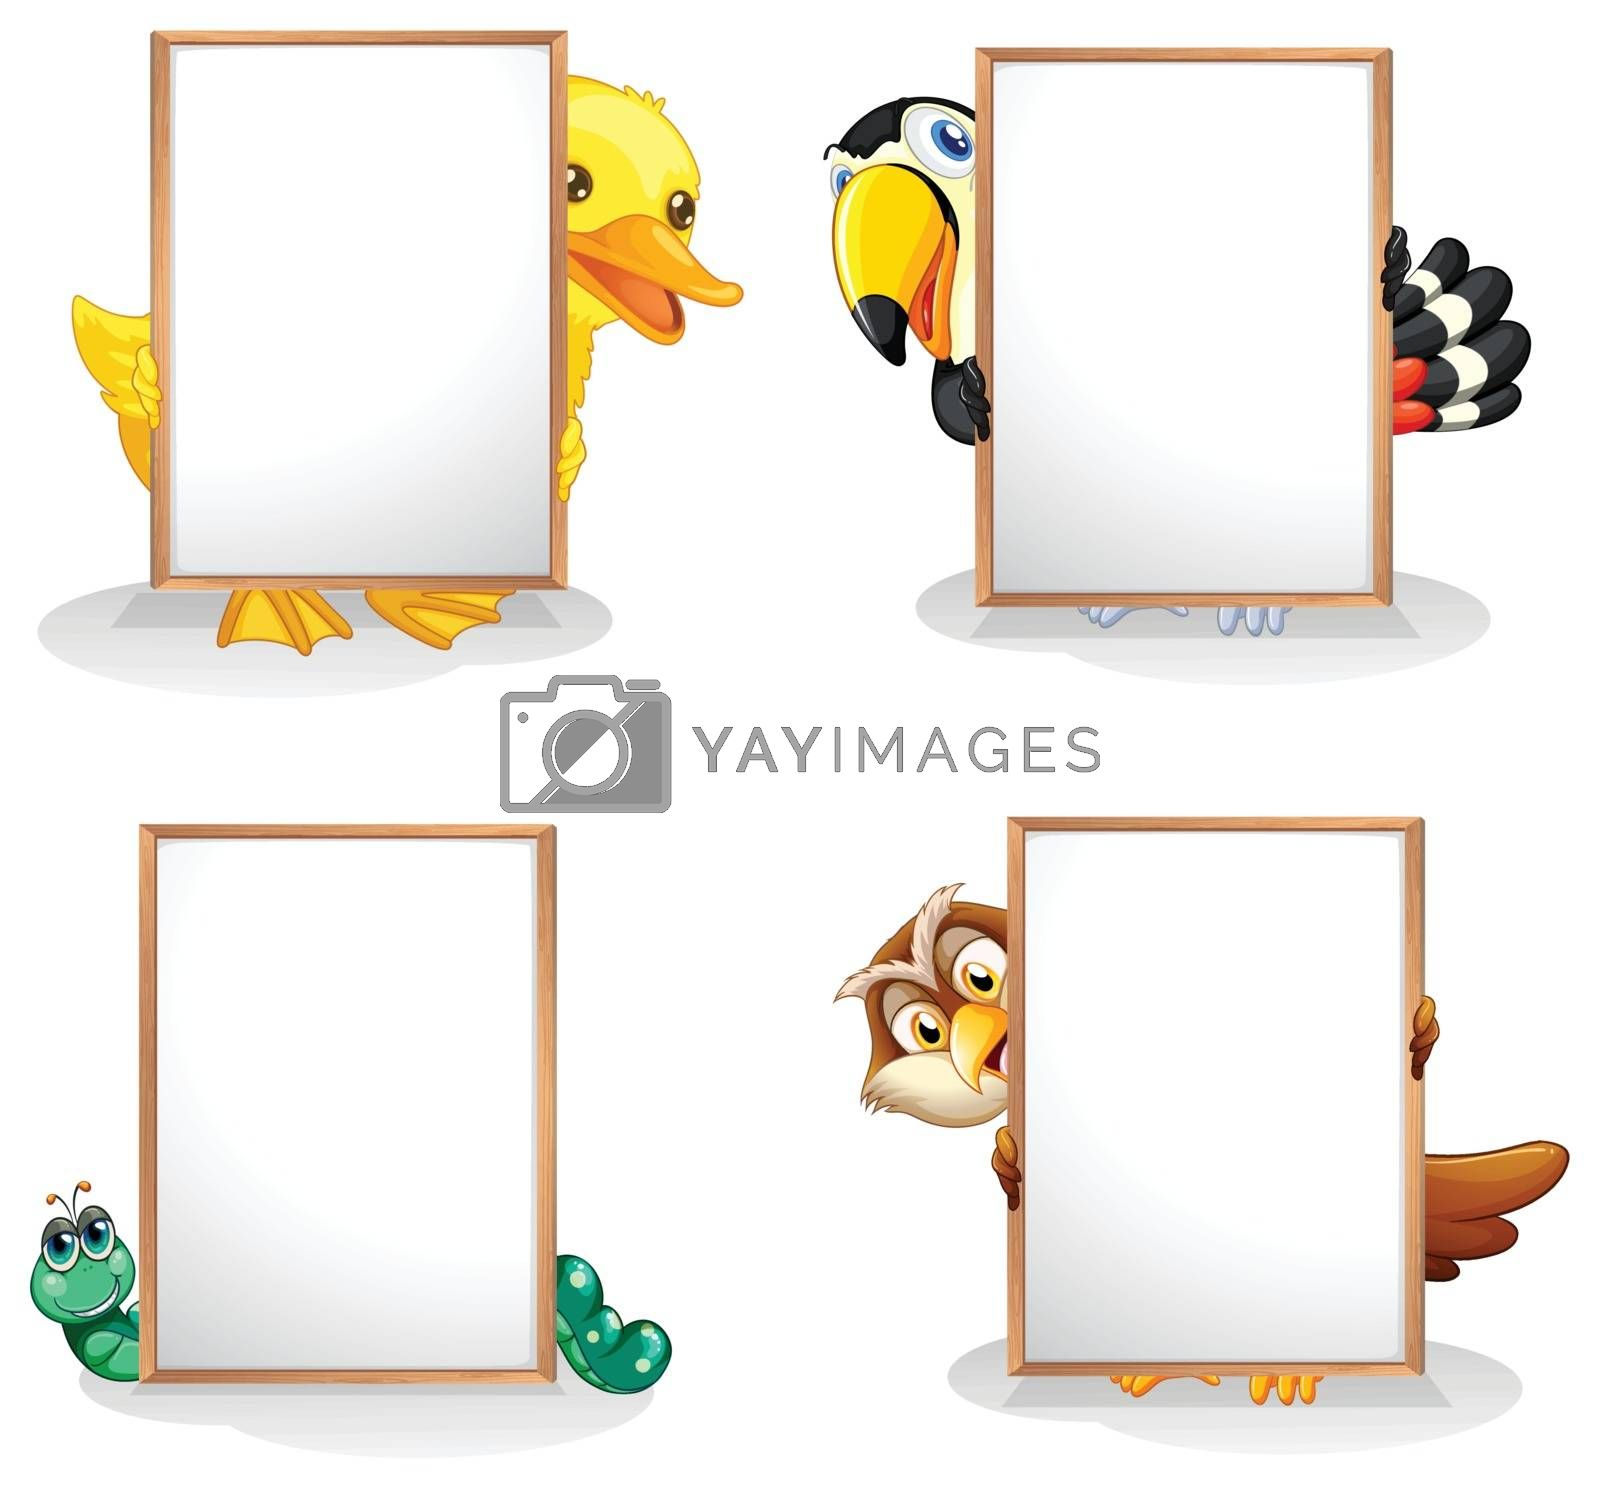 Illustration of the animals hiding at the back of the whiteboards on a white background